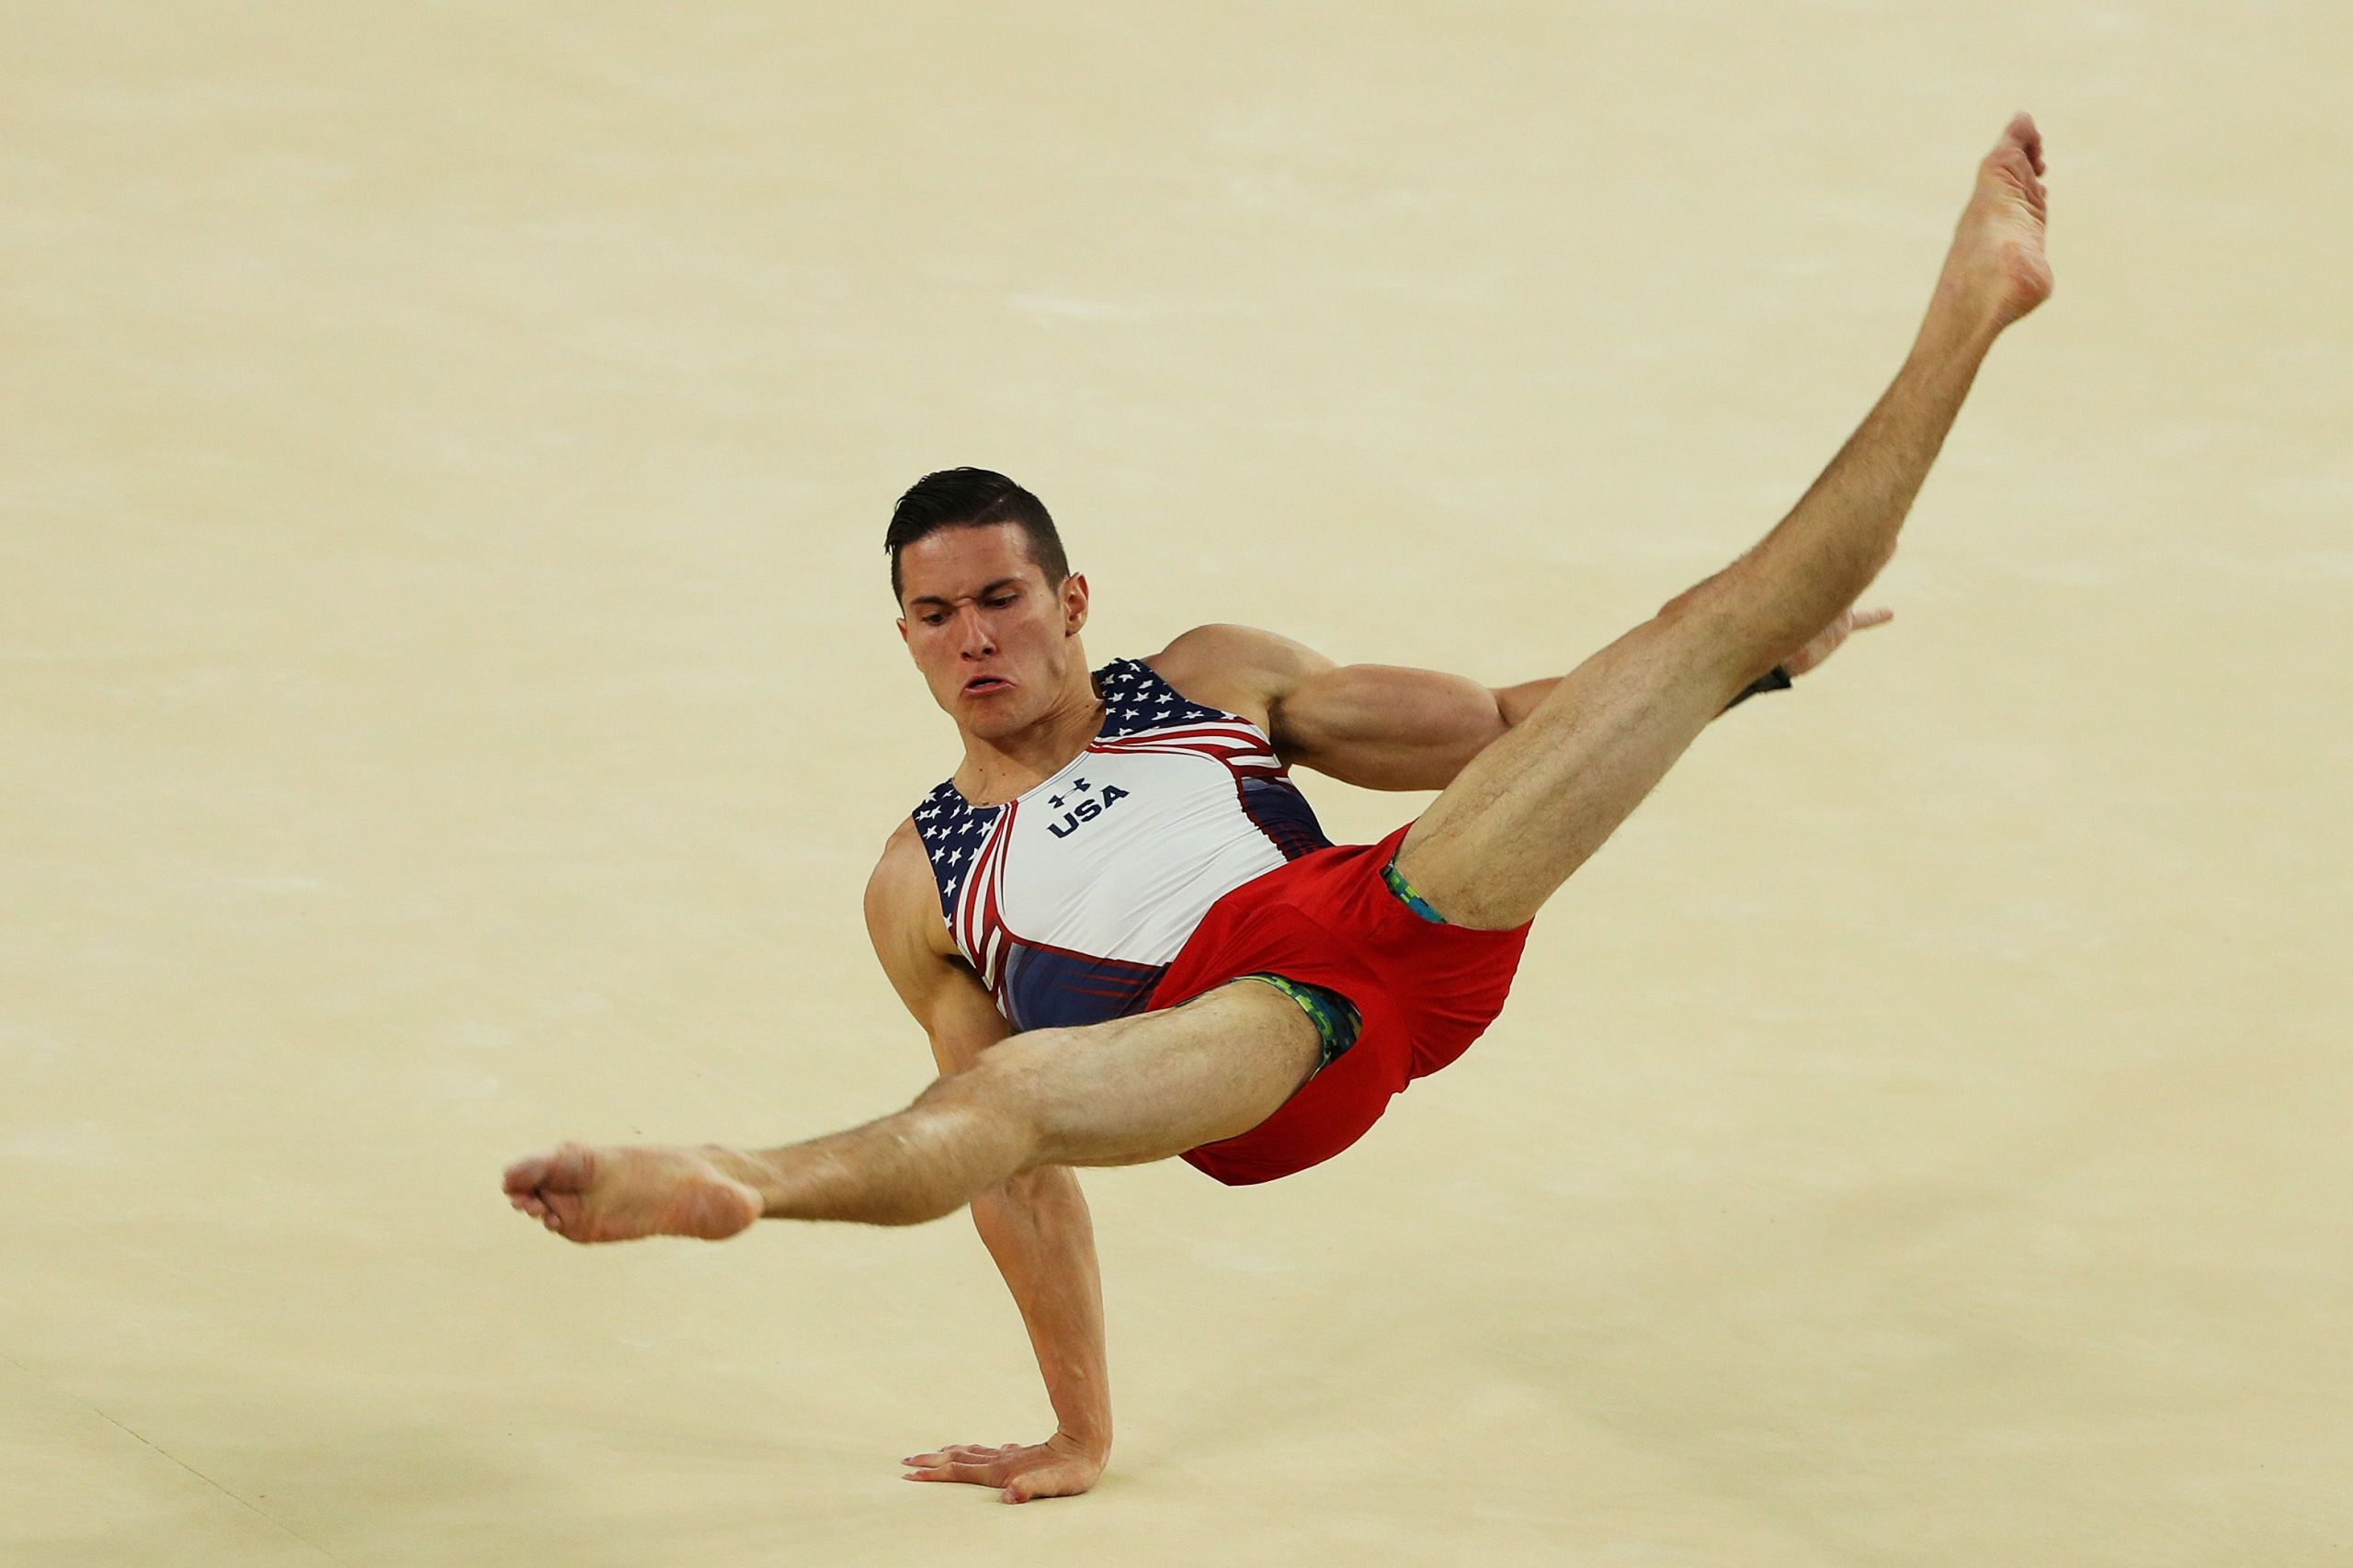 Why do girls when doing Gymnastics don't wear pants?